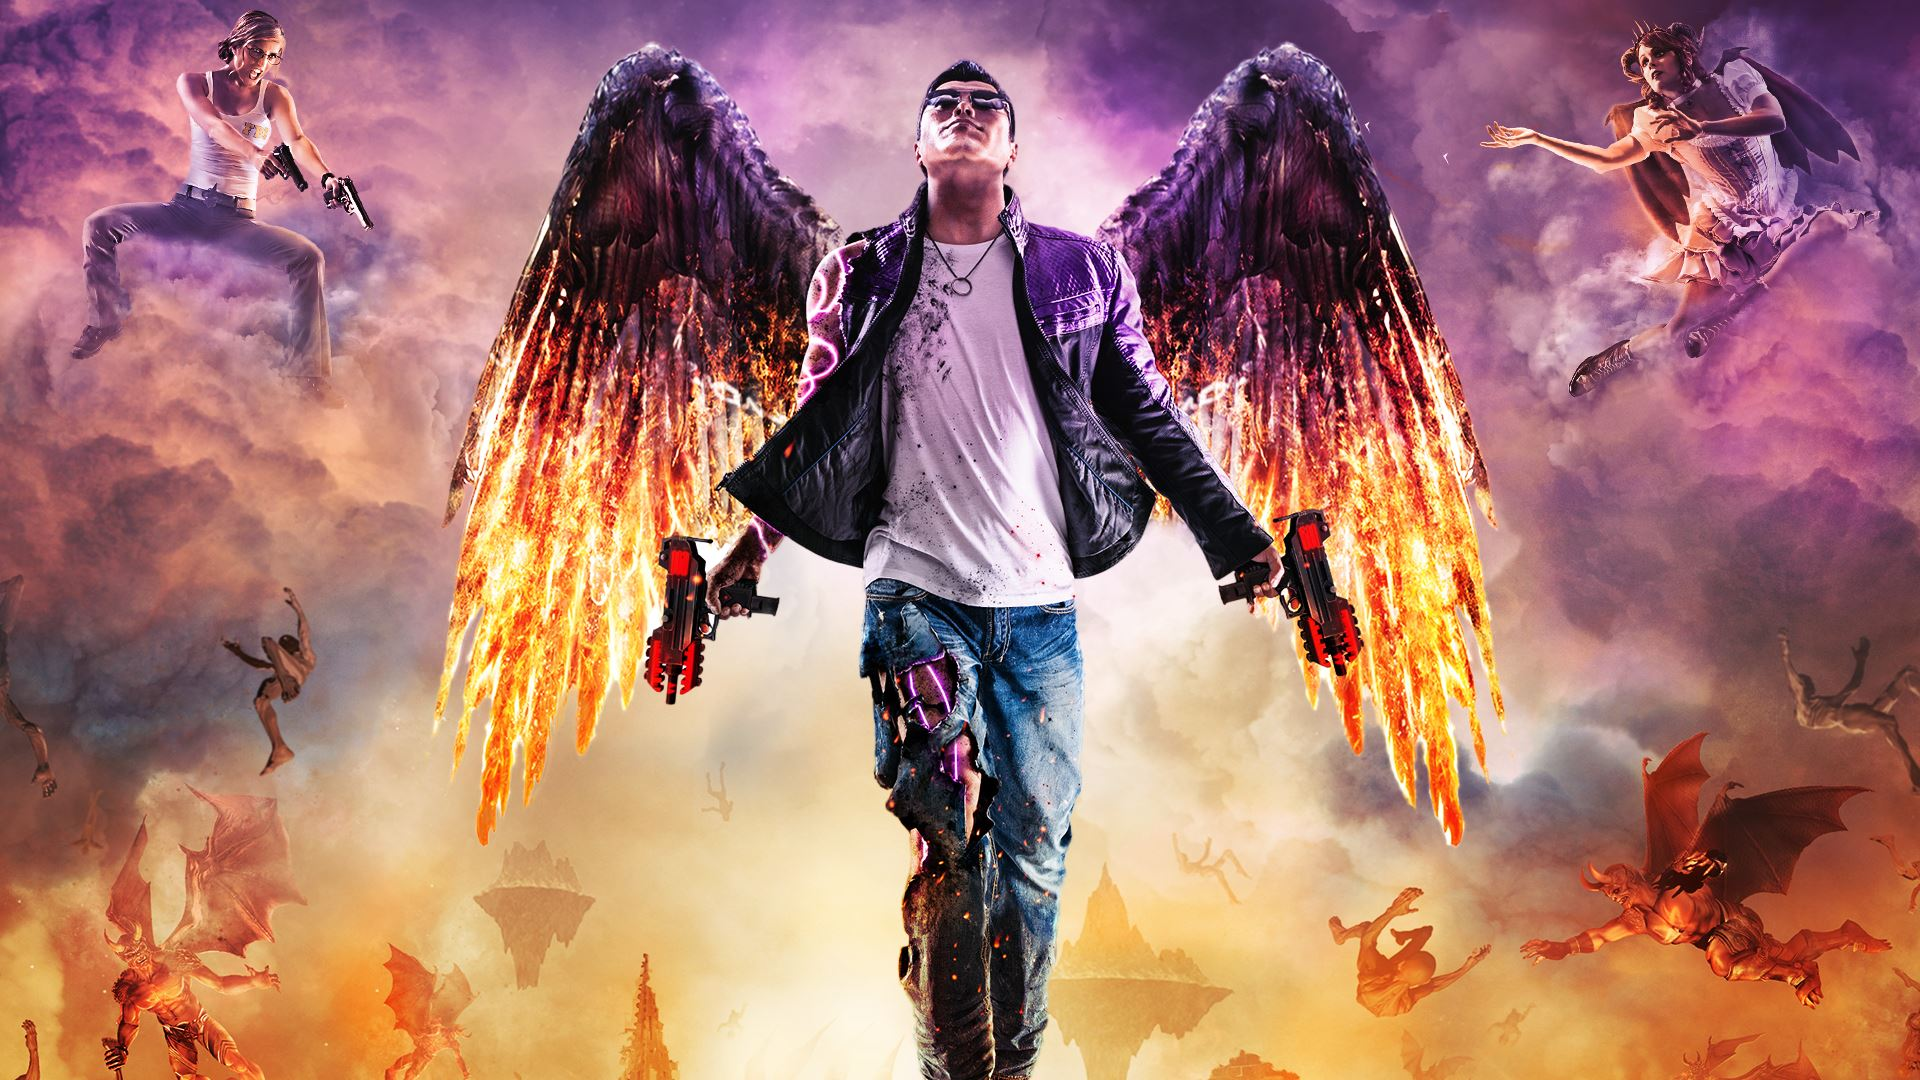 Saints Row IV: Re-Elected y Gat out of Hell - Análisis PlayStation 4